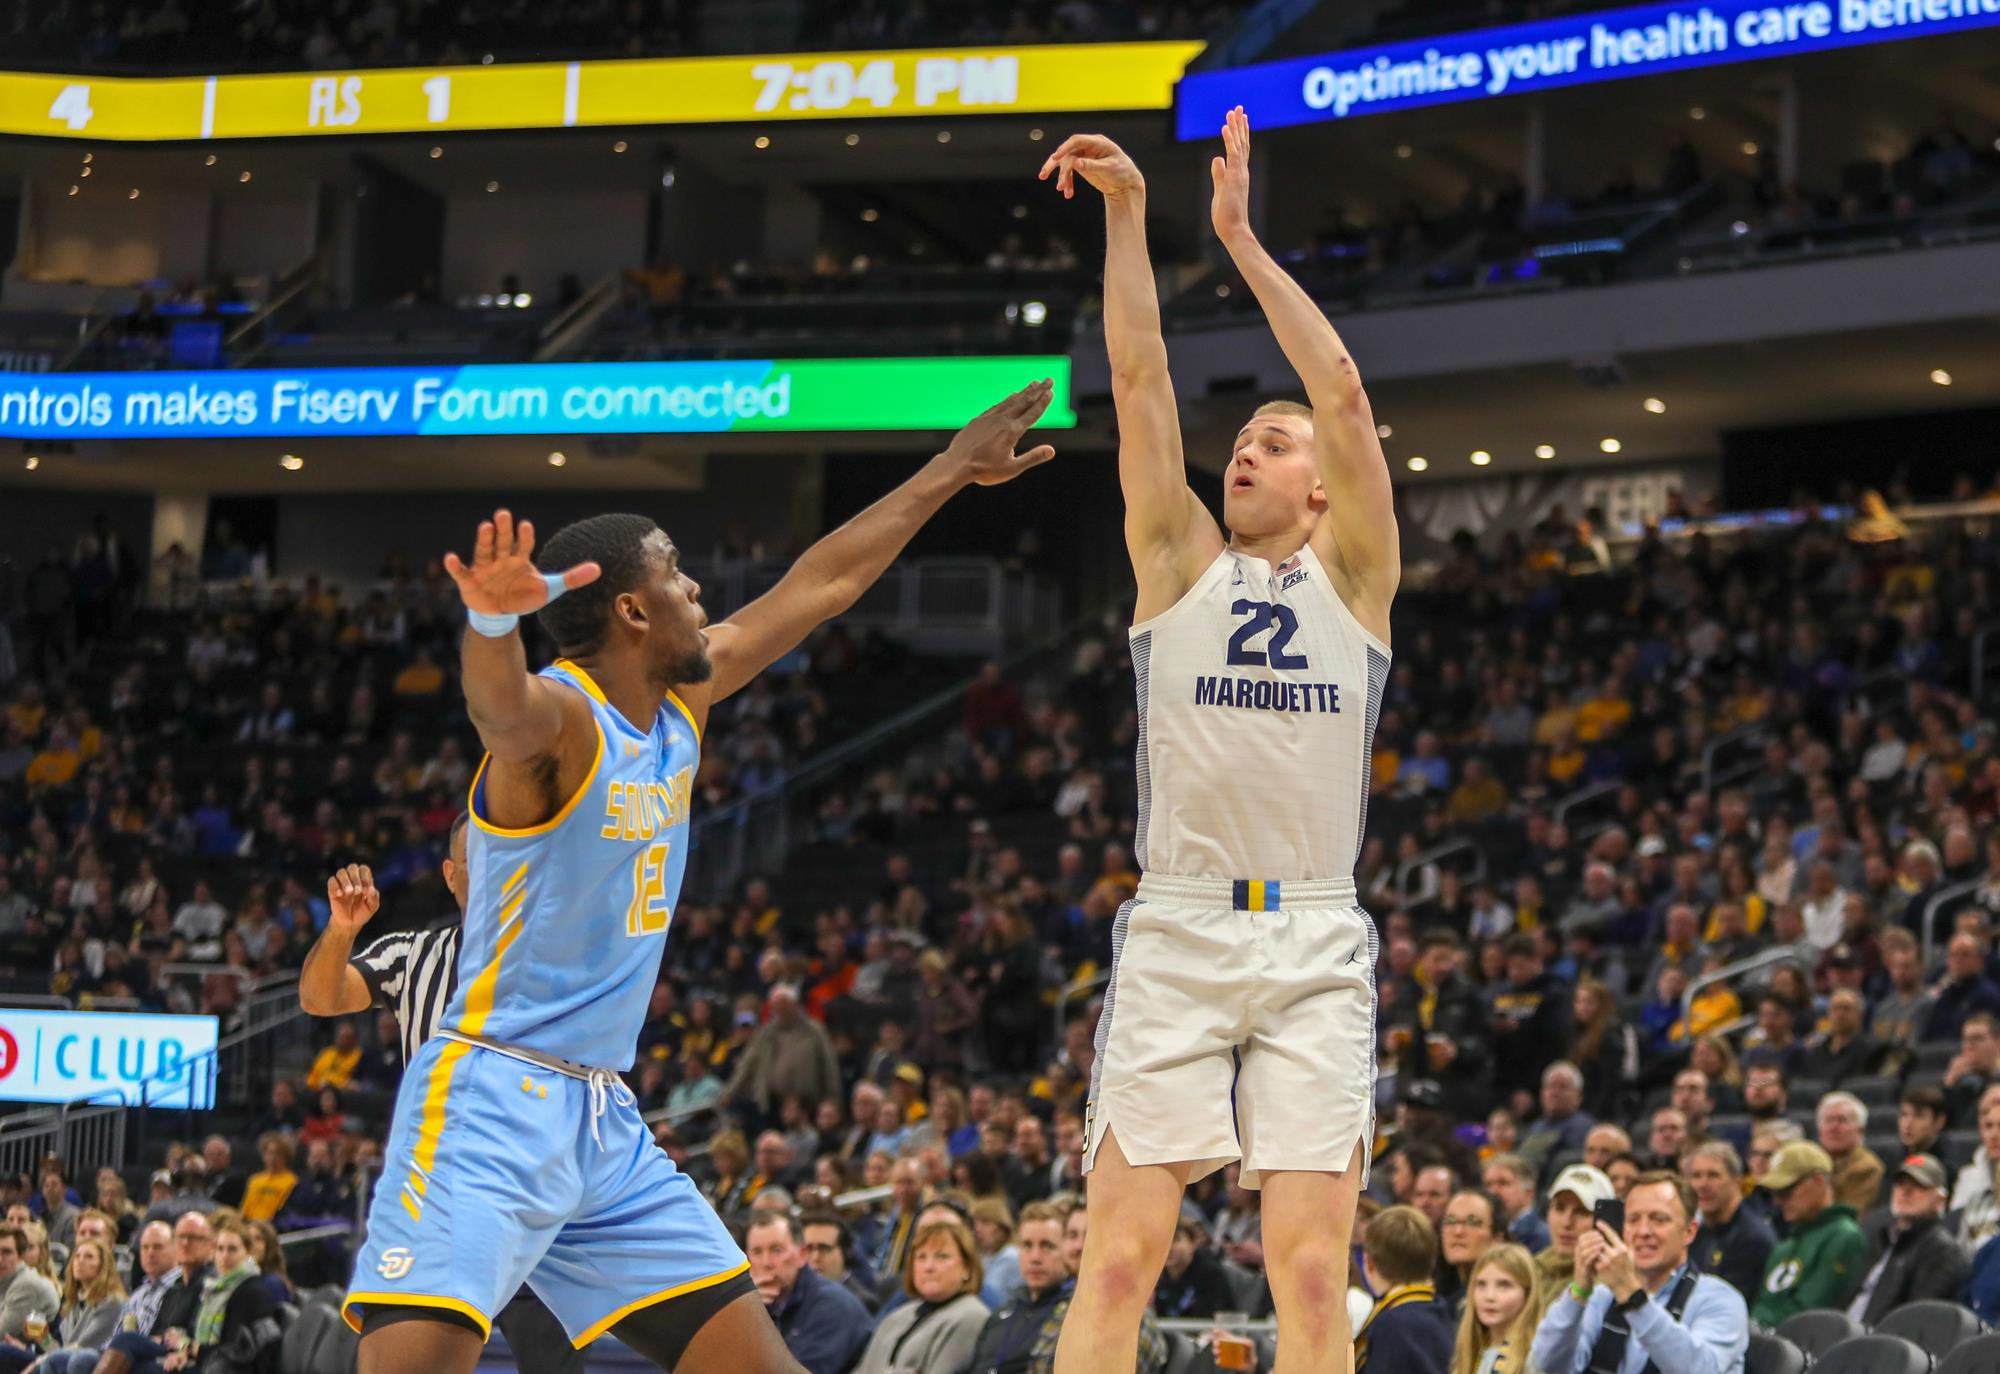 Men's Basketball Adds Joey Hauser to Roster - Michigan State